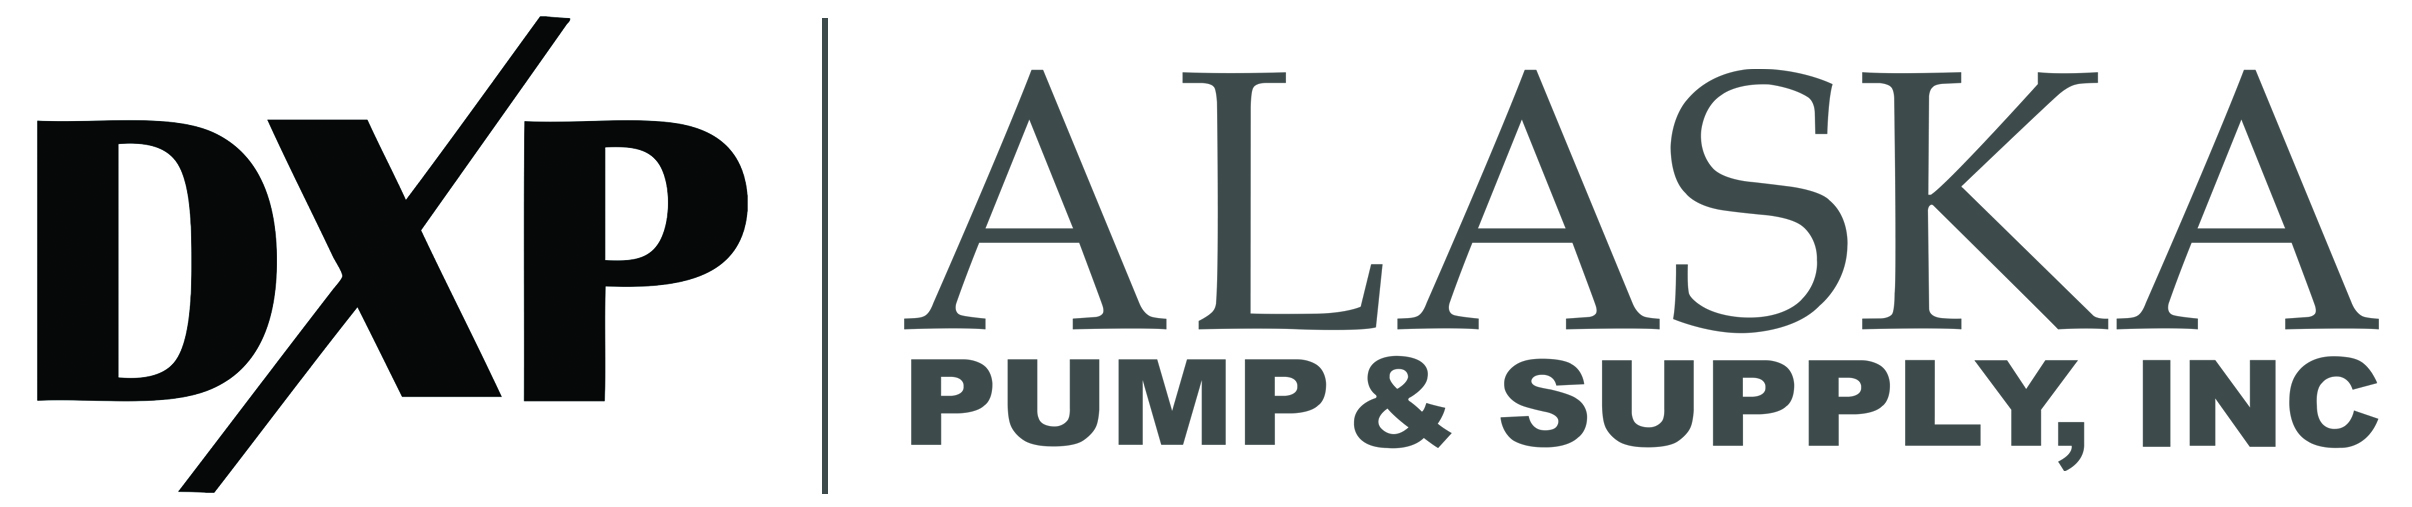 DXP|Alaska Pump & Supply